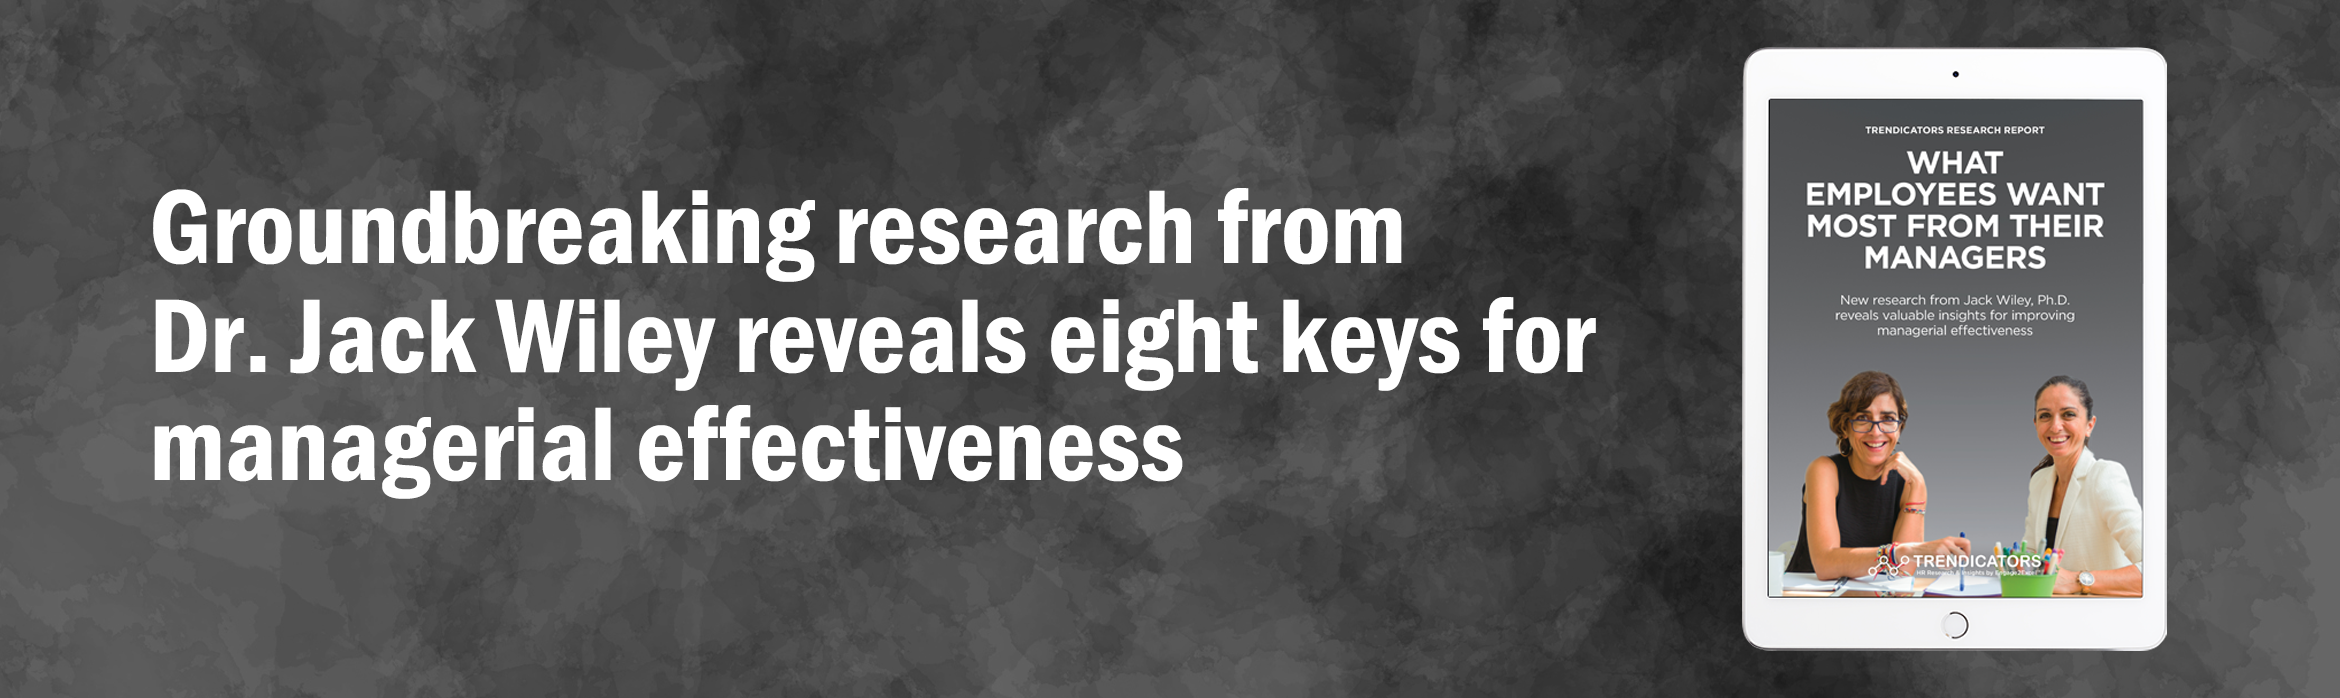 Groundbreaking research from Dr. Jack Wiley reveals eight keys for managerial effectiveness